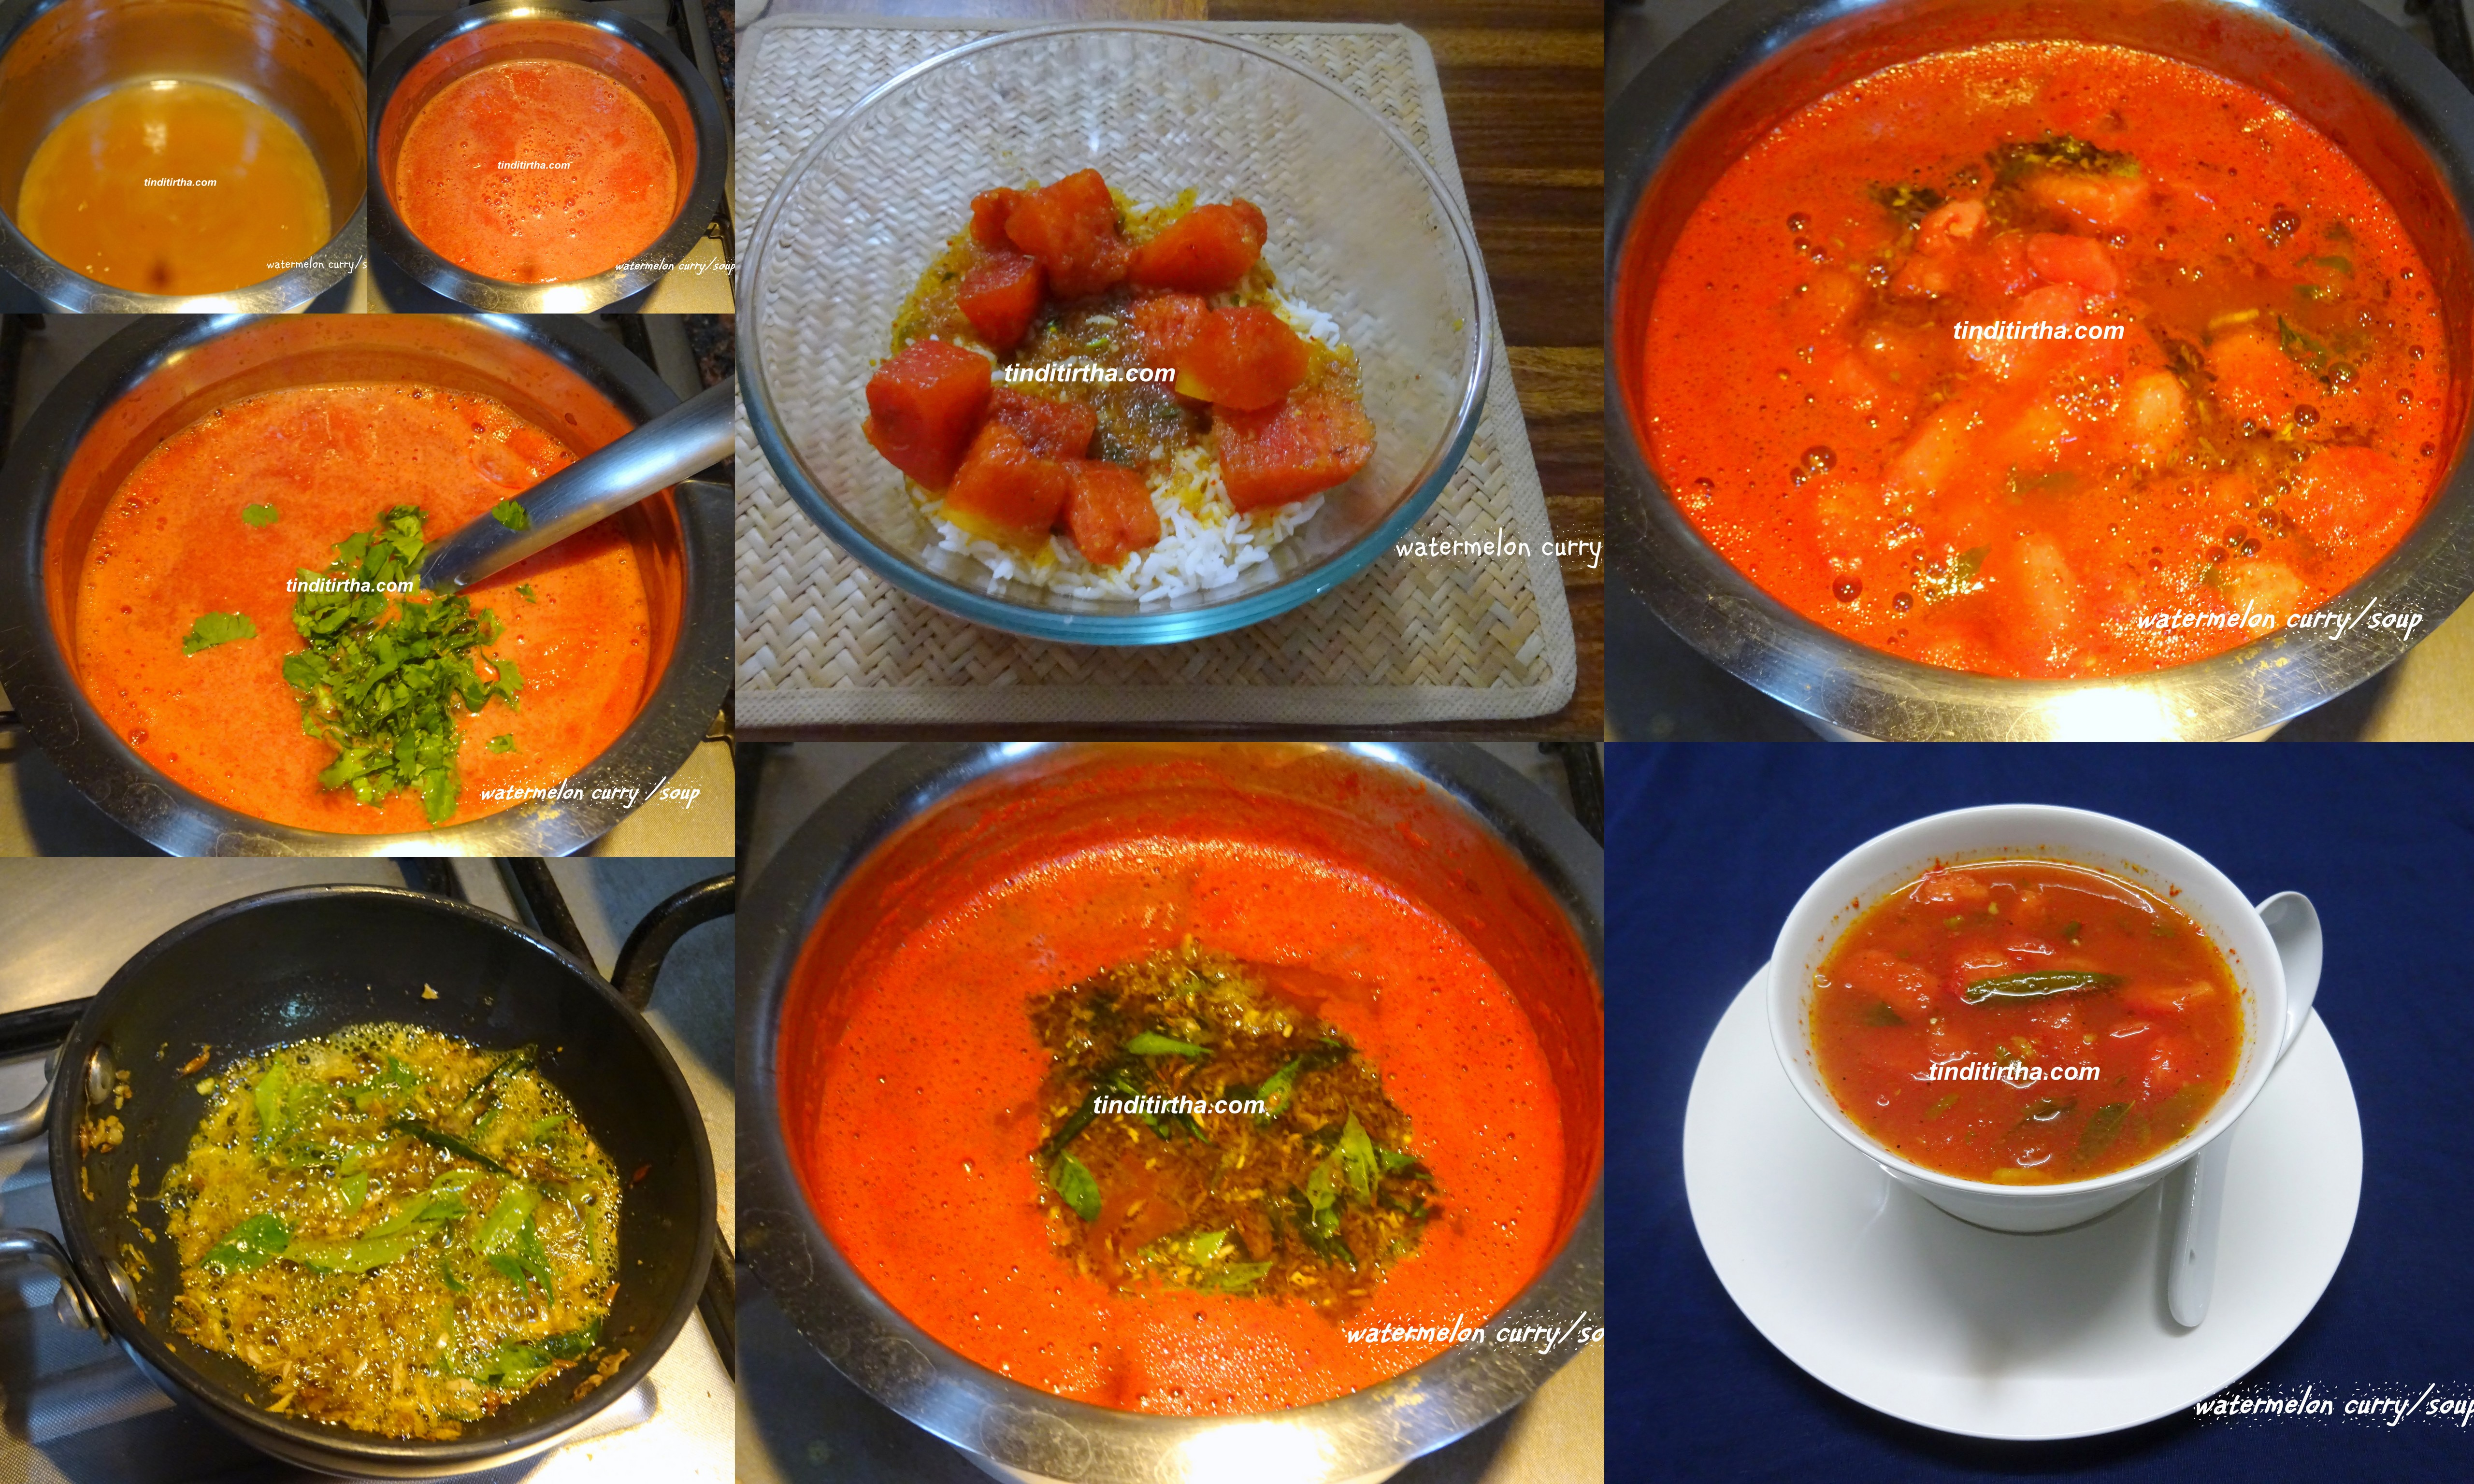 WATERMELON CURRY – SOUP